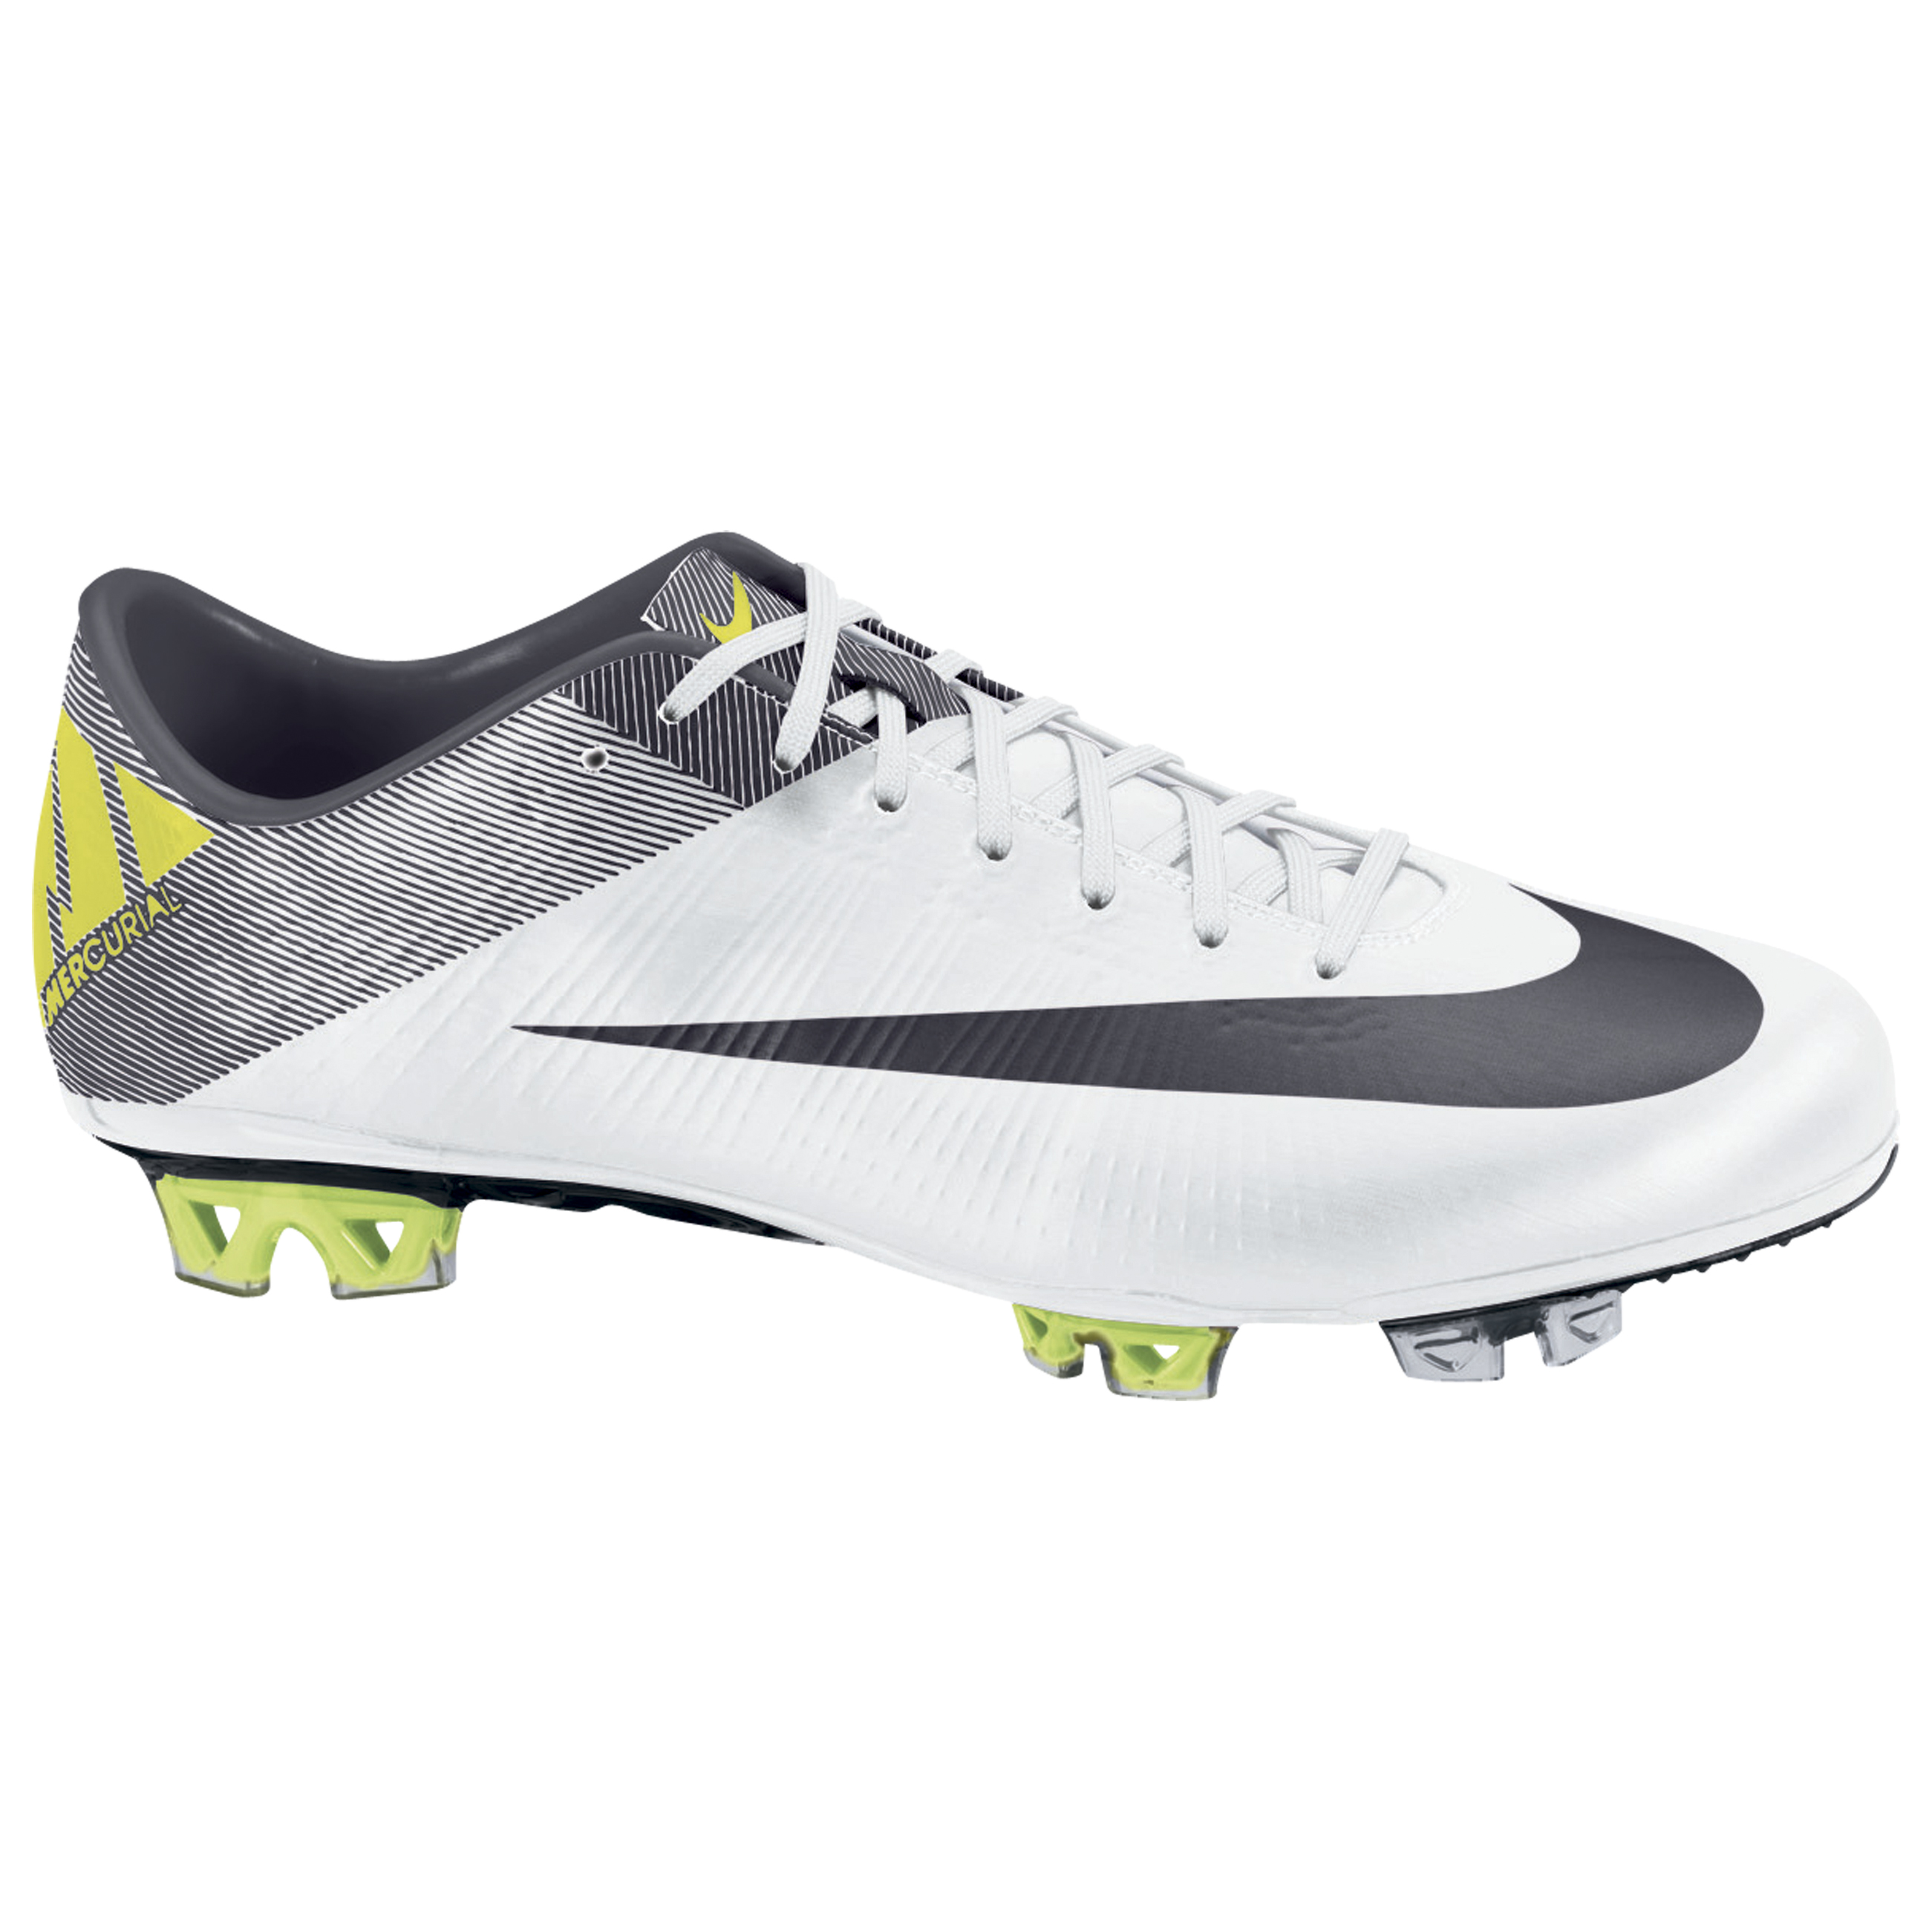 Nike Vapor Superfly III Firm Ground Football Boots - Trace Blue/Anthracite/Cyber